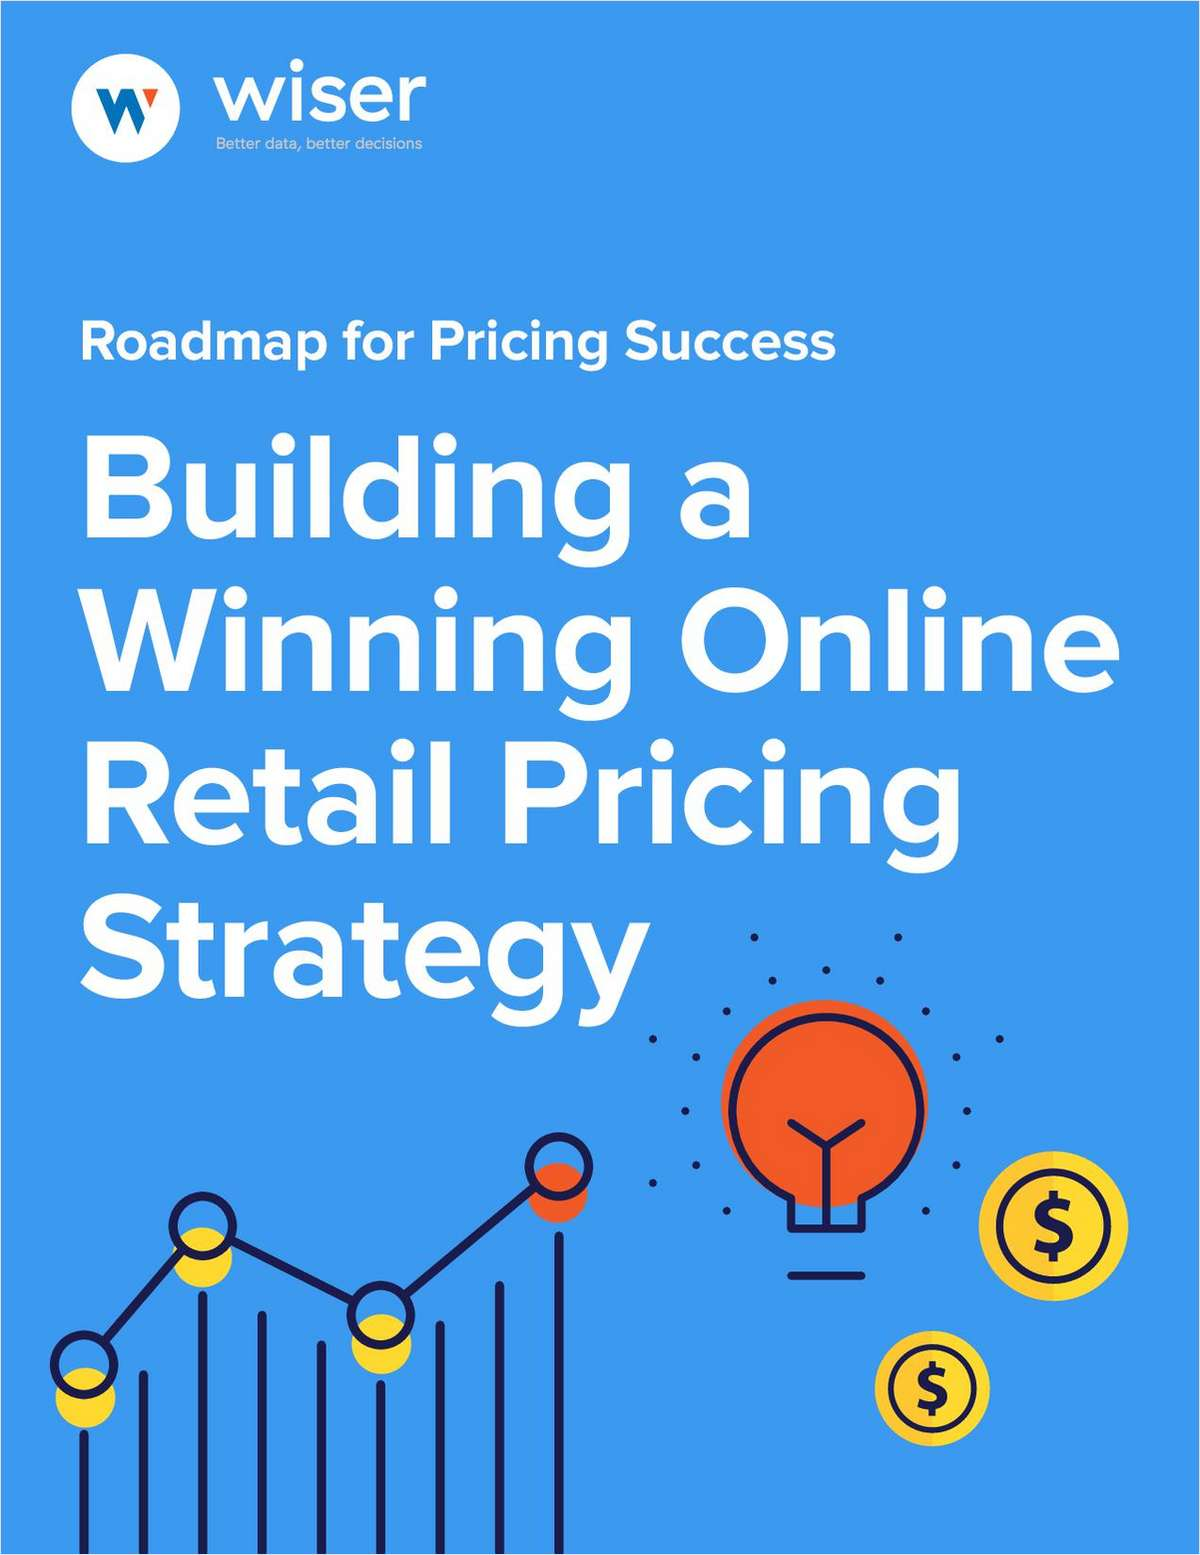 Roadmap for Pricing Success